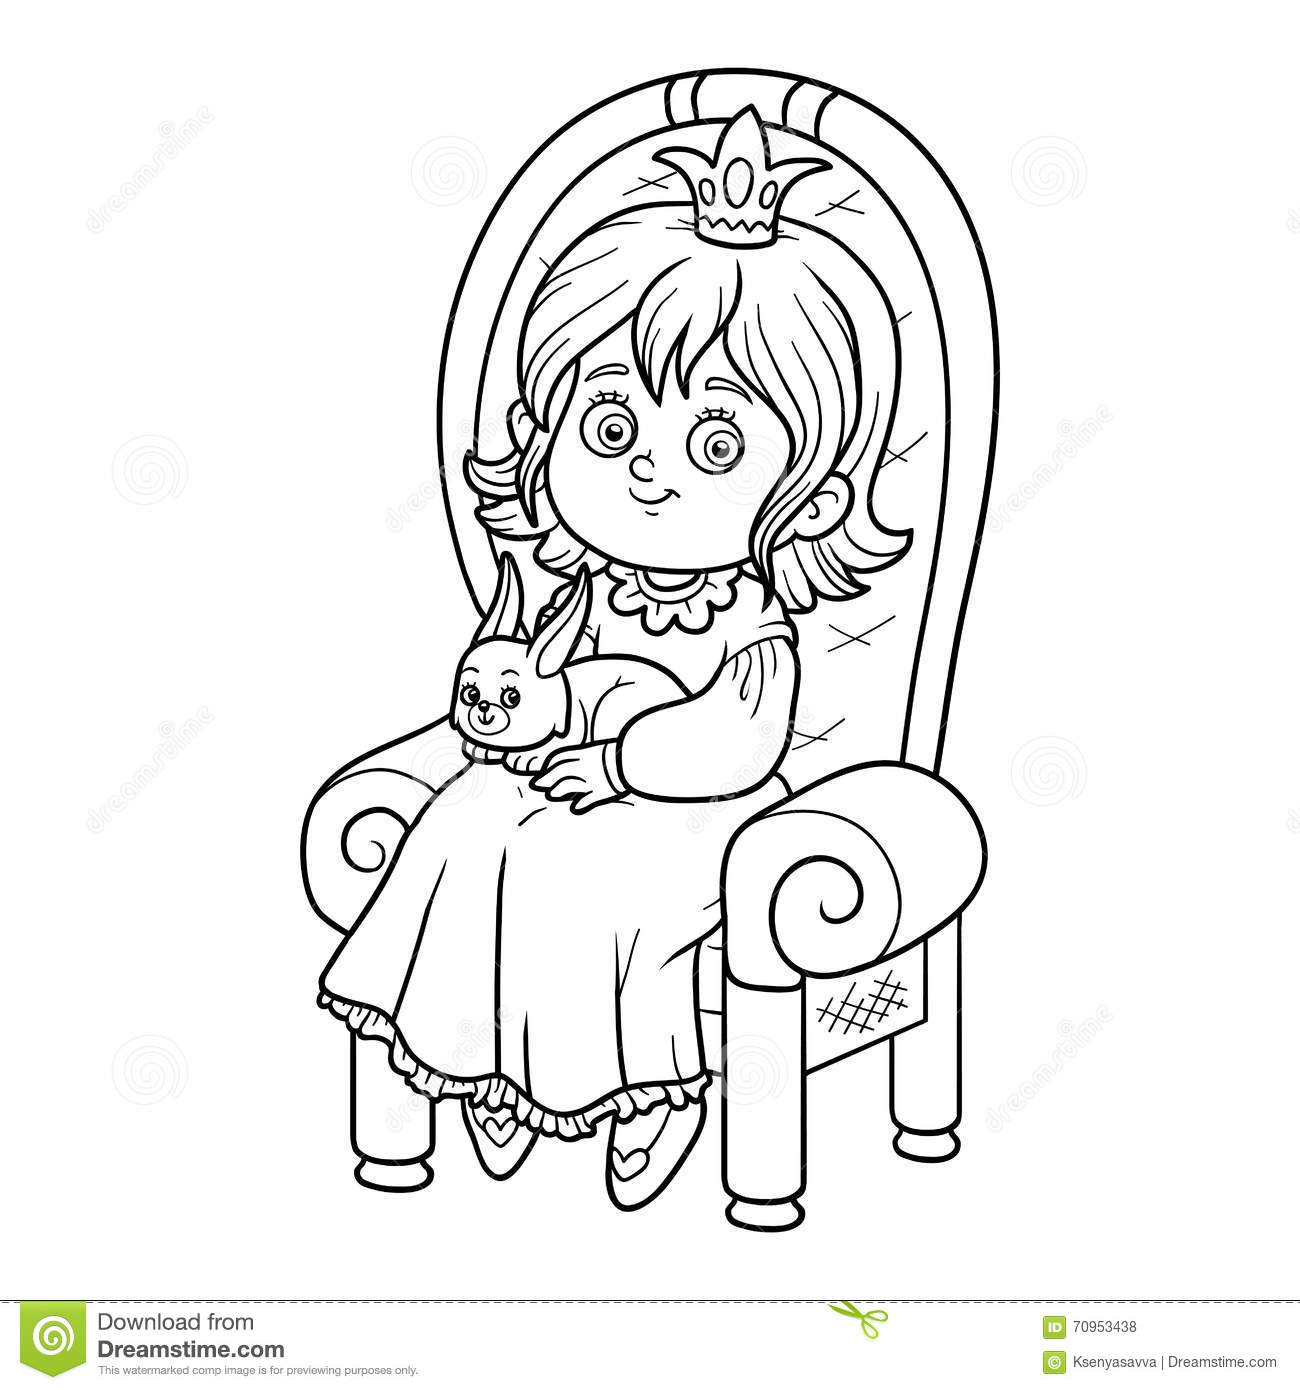 Coloring book princess - Coloring Book Princess Seated On A Throne